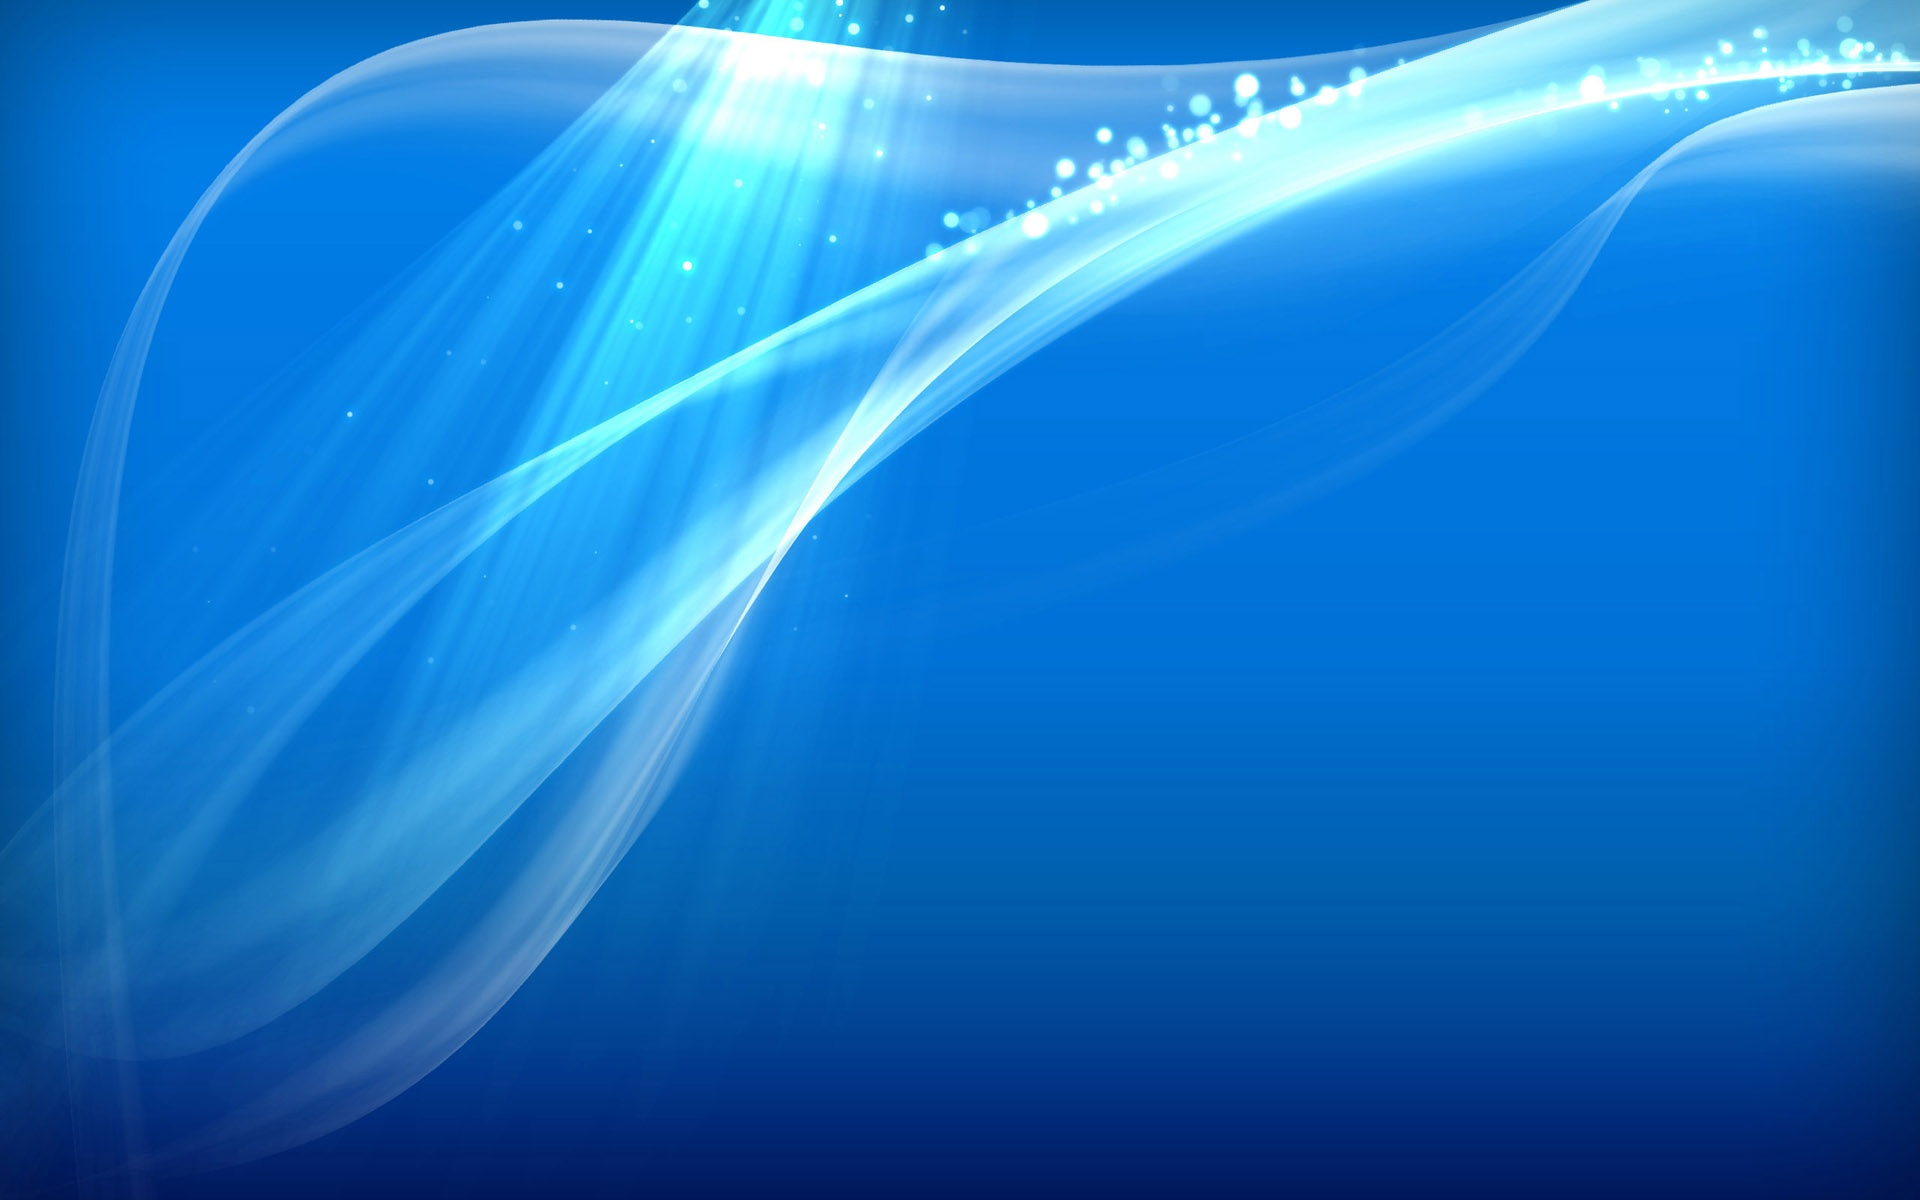 Blue Background Abstract Wallpapers HD Wallpapers 1920x1200